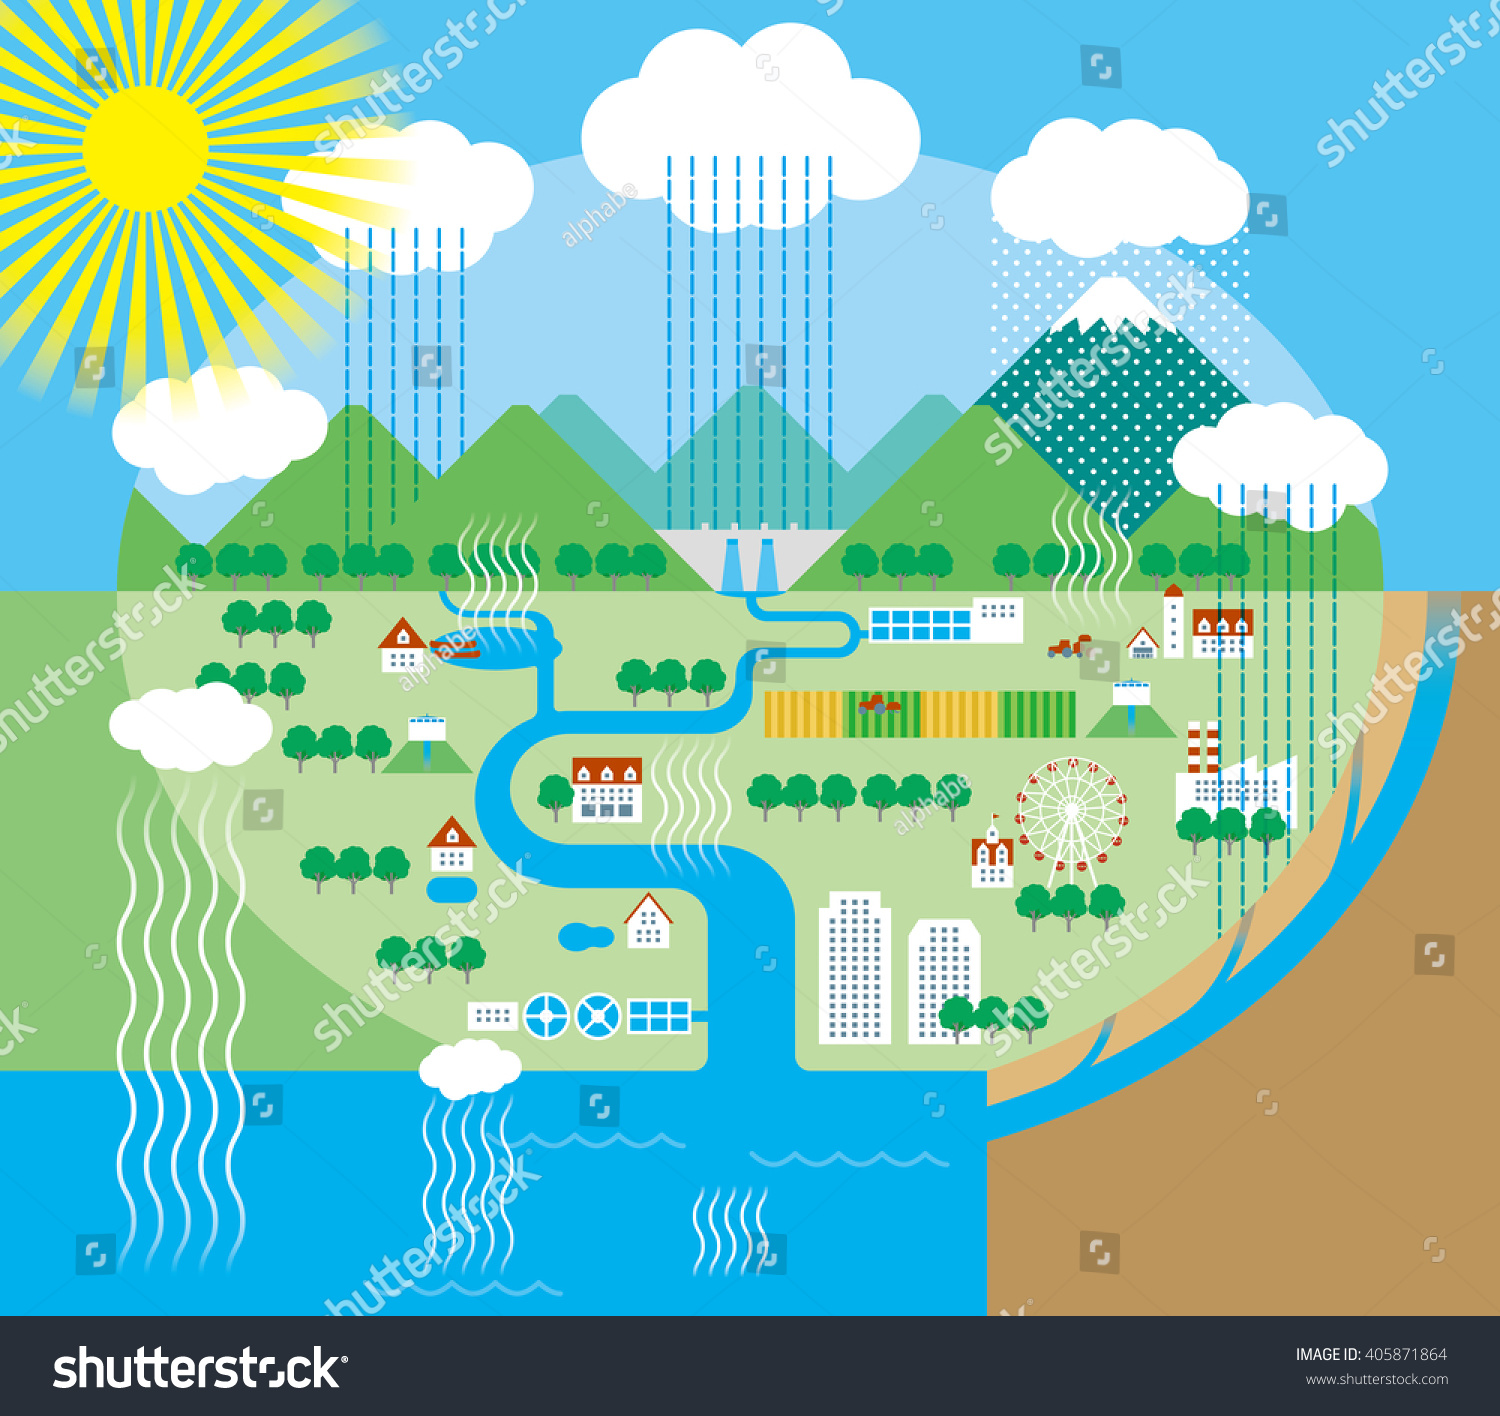 Water Cycle Stock Vector